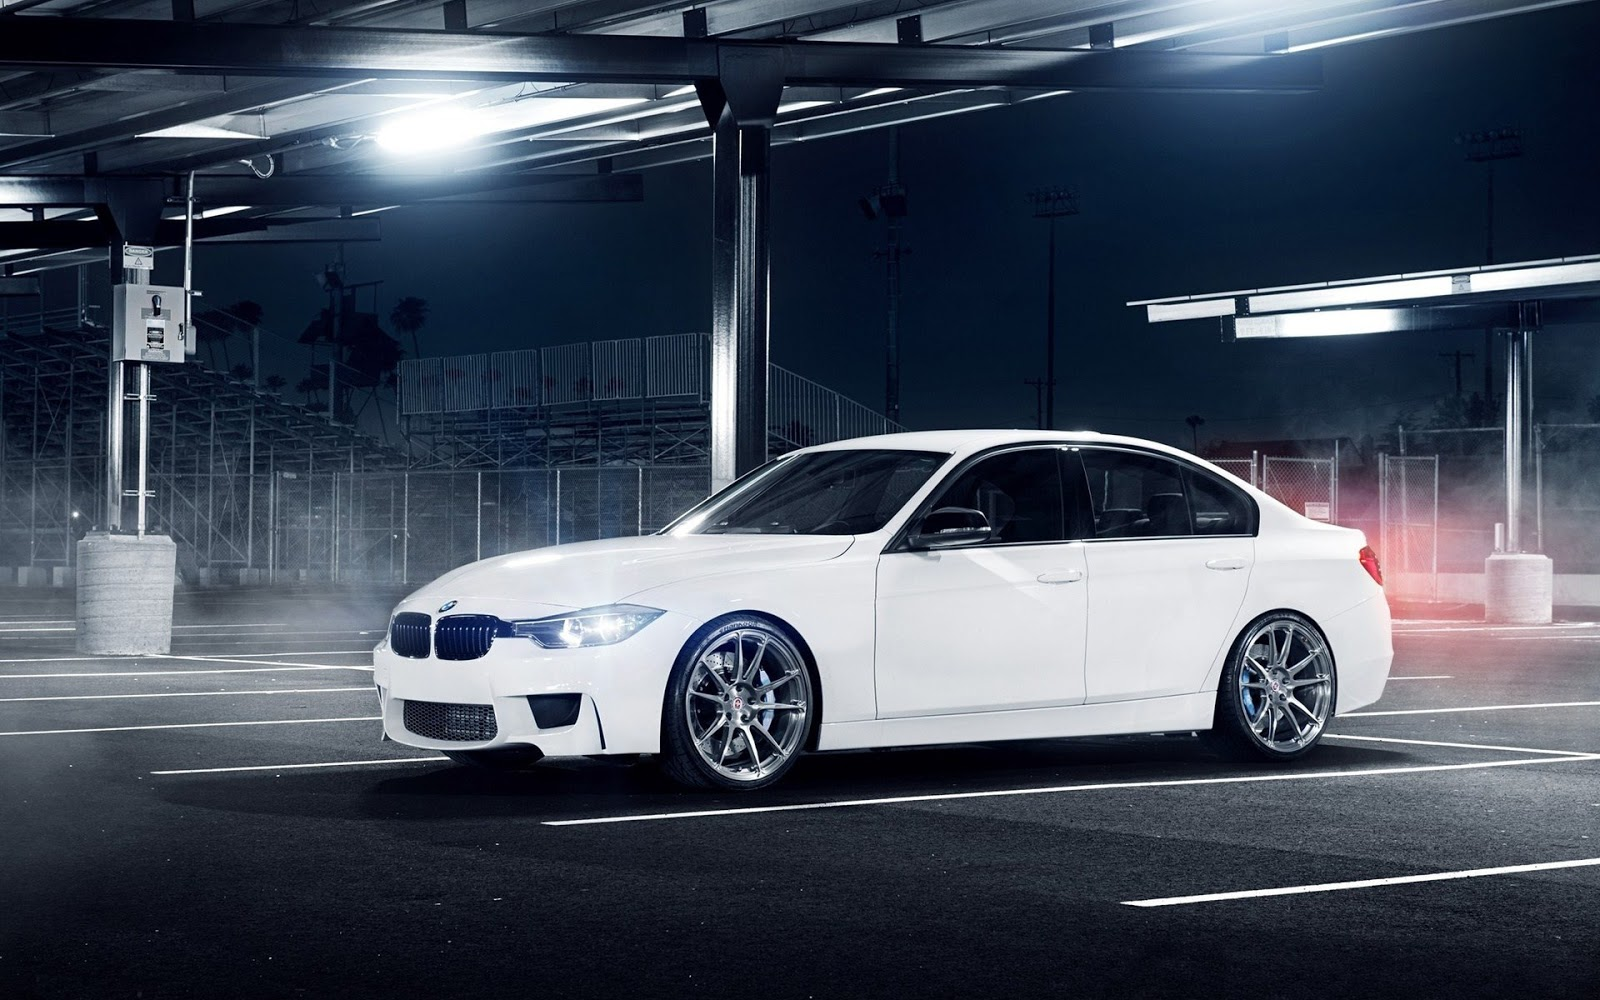 Very Cute Baby Mobile Wallpaper Bmw Car Wallpapers Download Free Bmw Wallpapers Most